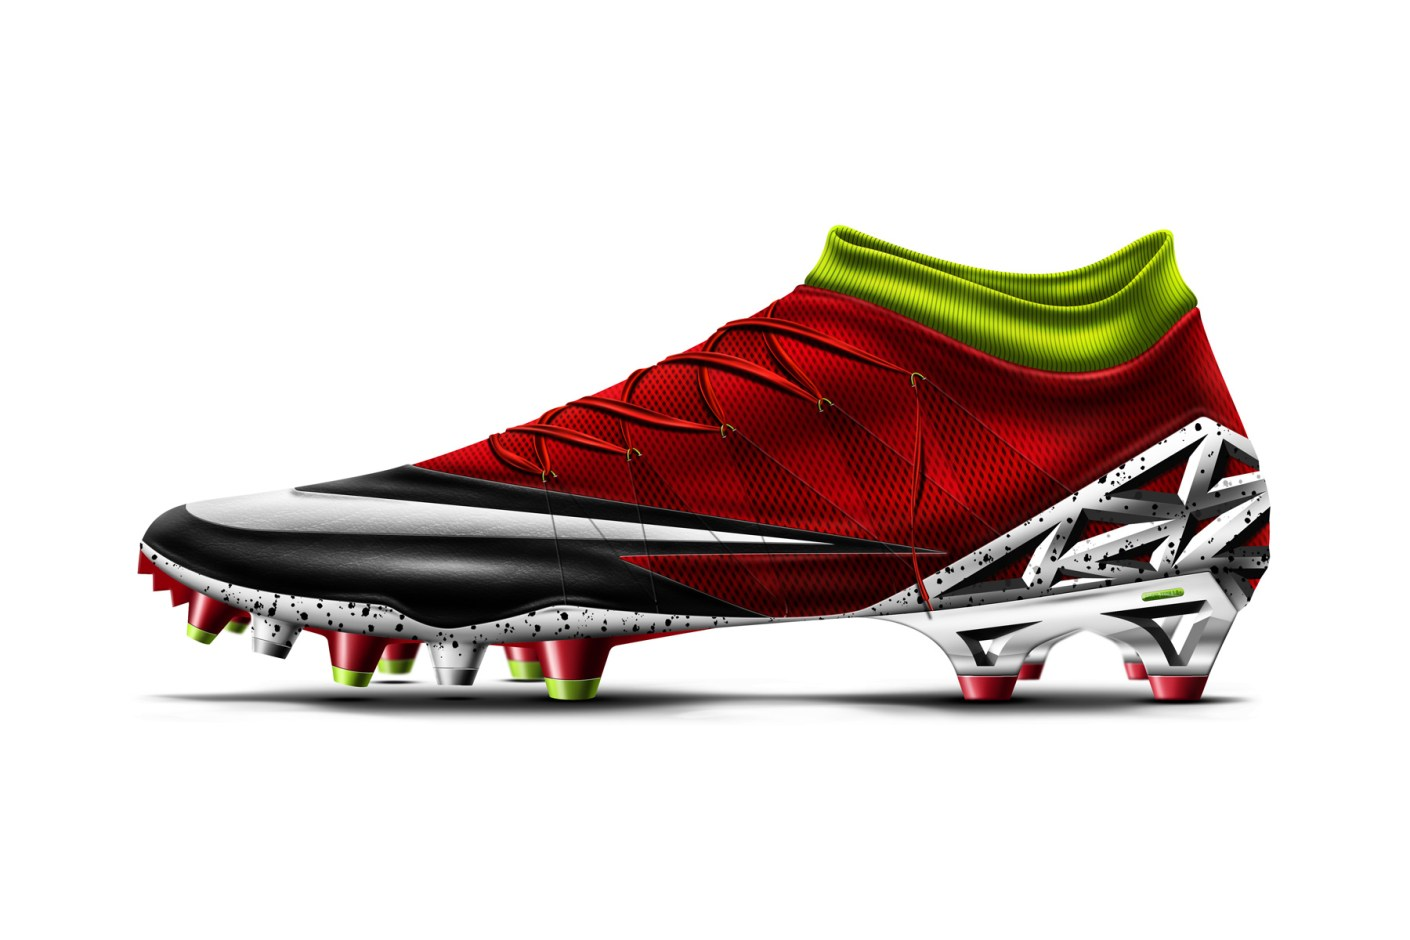 Image of Booting Around: Thibaut Courtois' Nike The Wall Boot